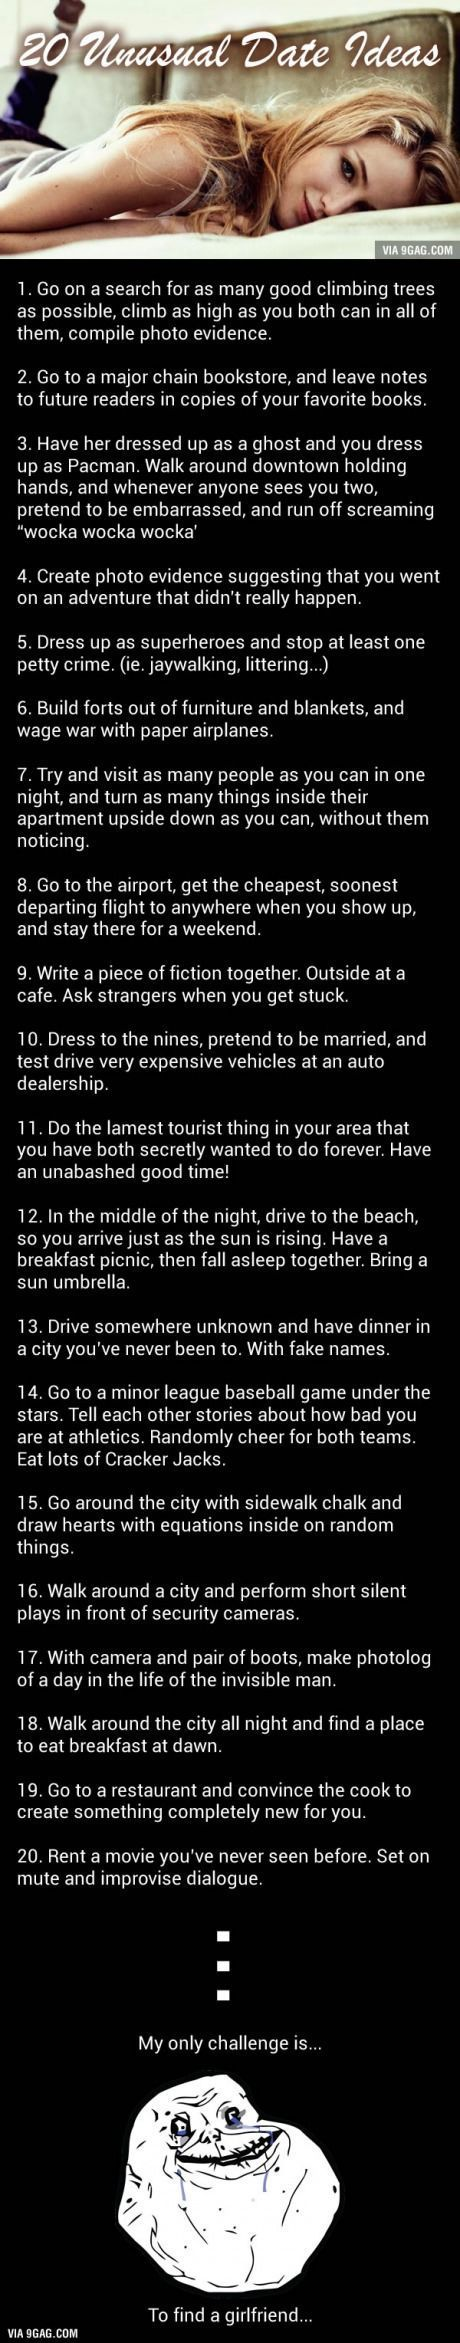 romantic date ideas for him https://hookup-sites.info/dating-advice-for-women/ #dating #dateideas #datingtips #datingadvice